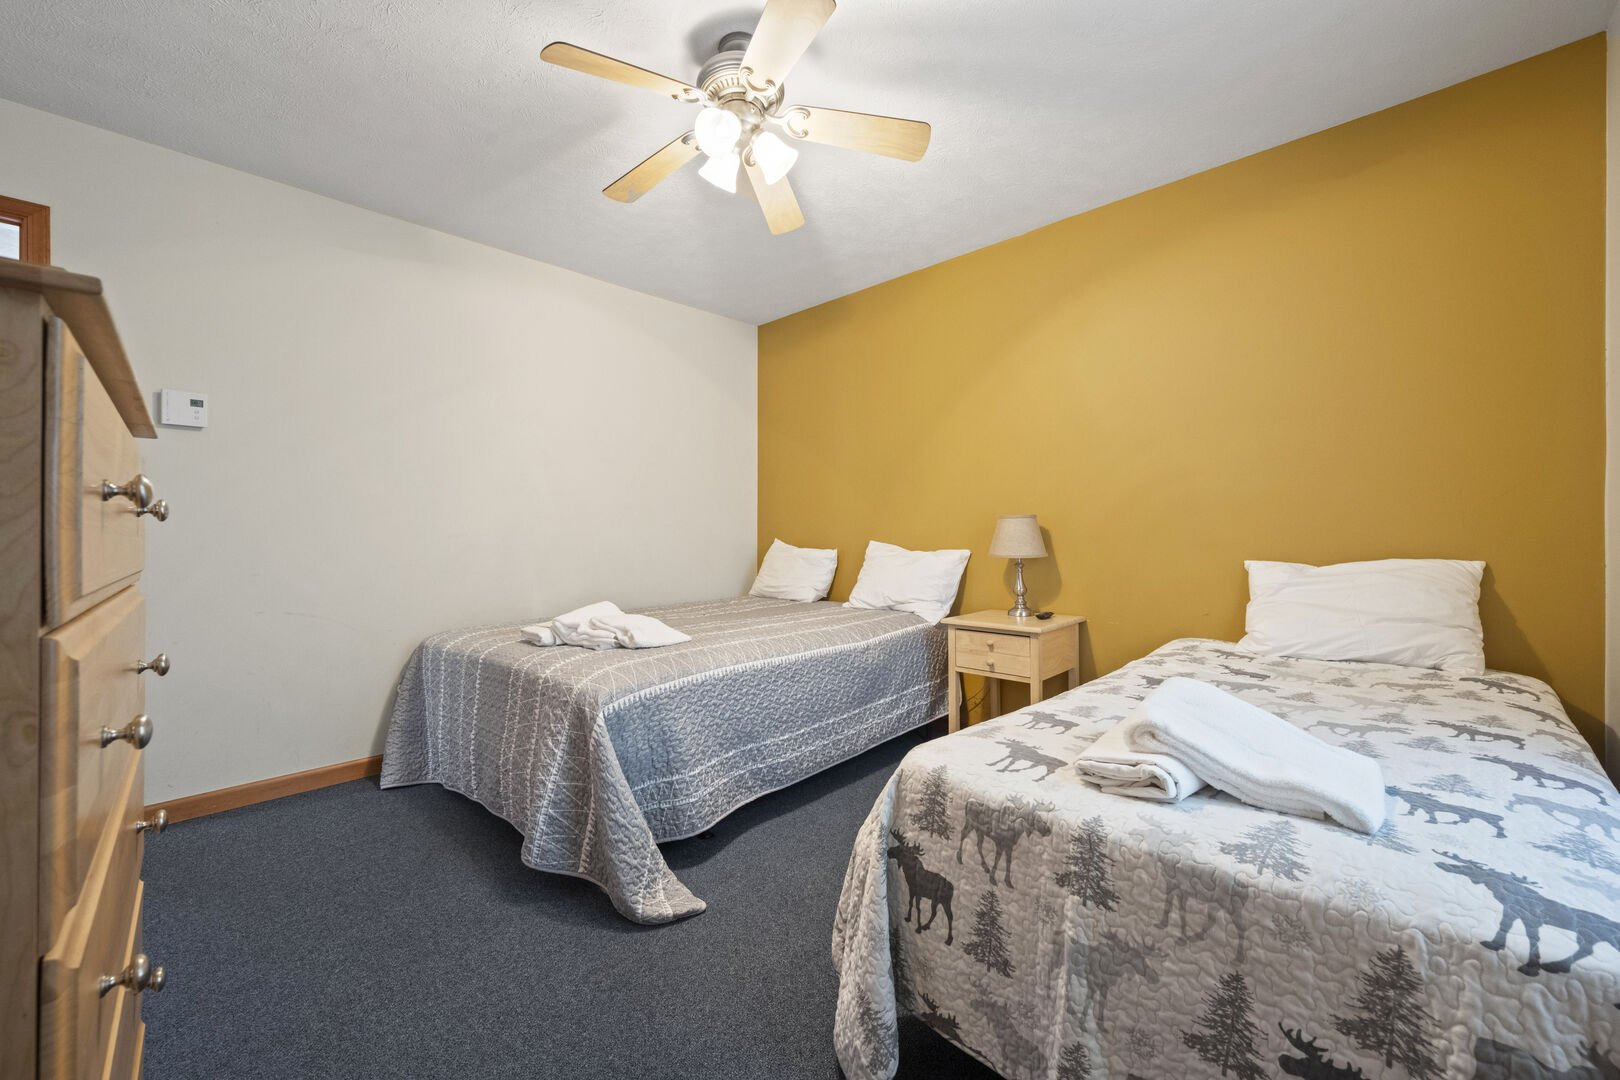 This rental has a bedroom with two beds and a ceiling fan.